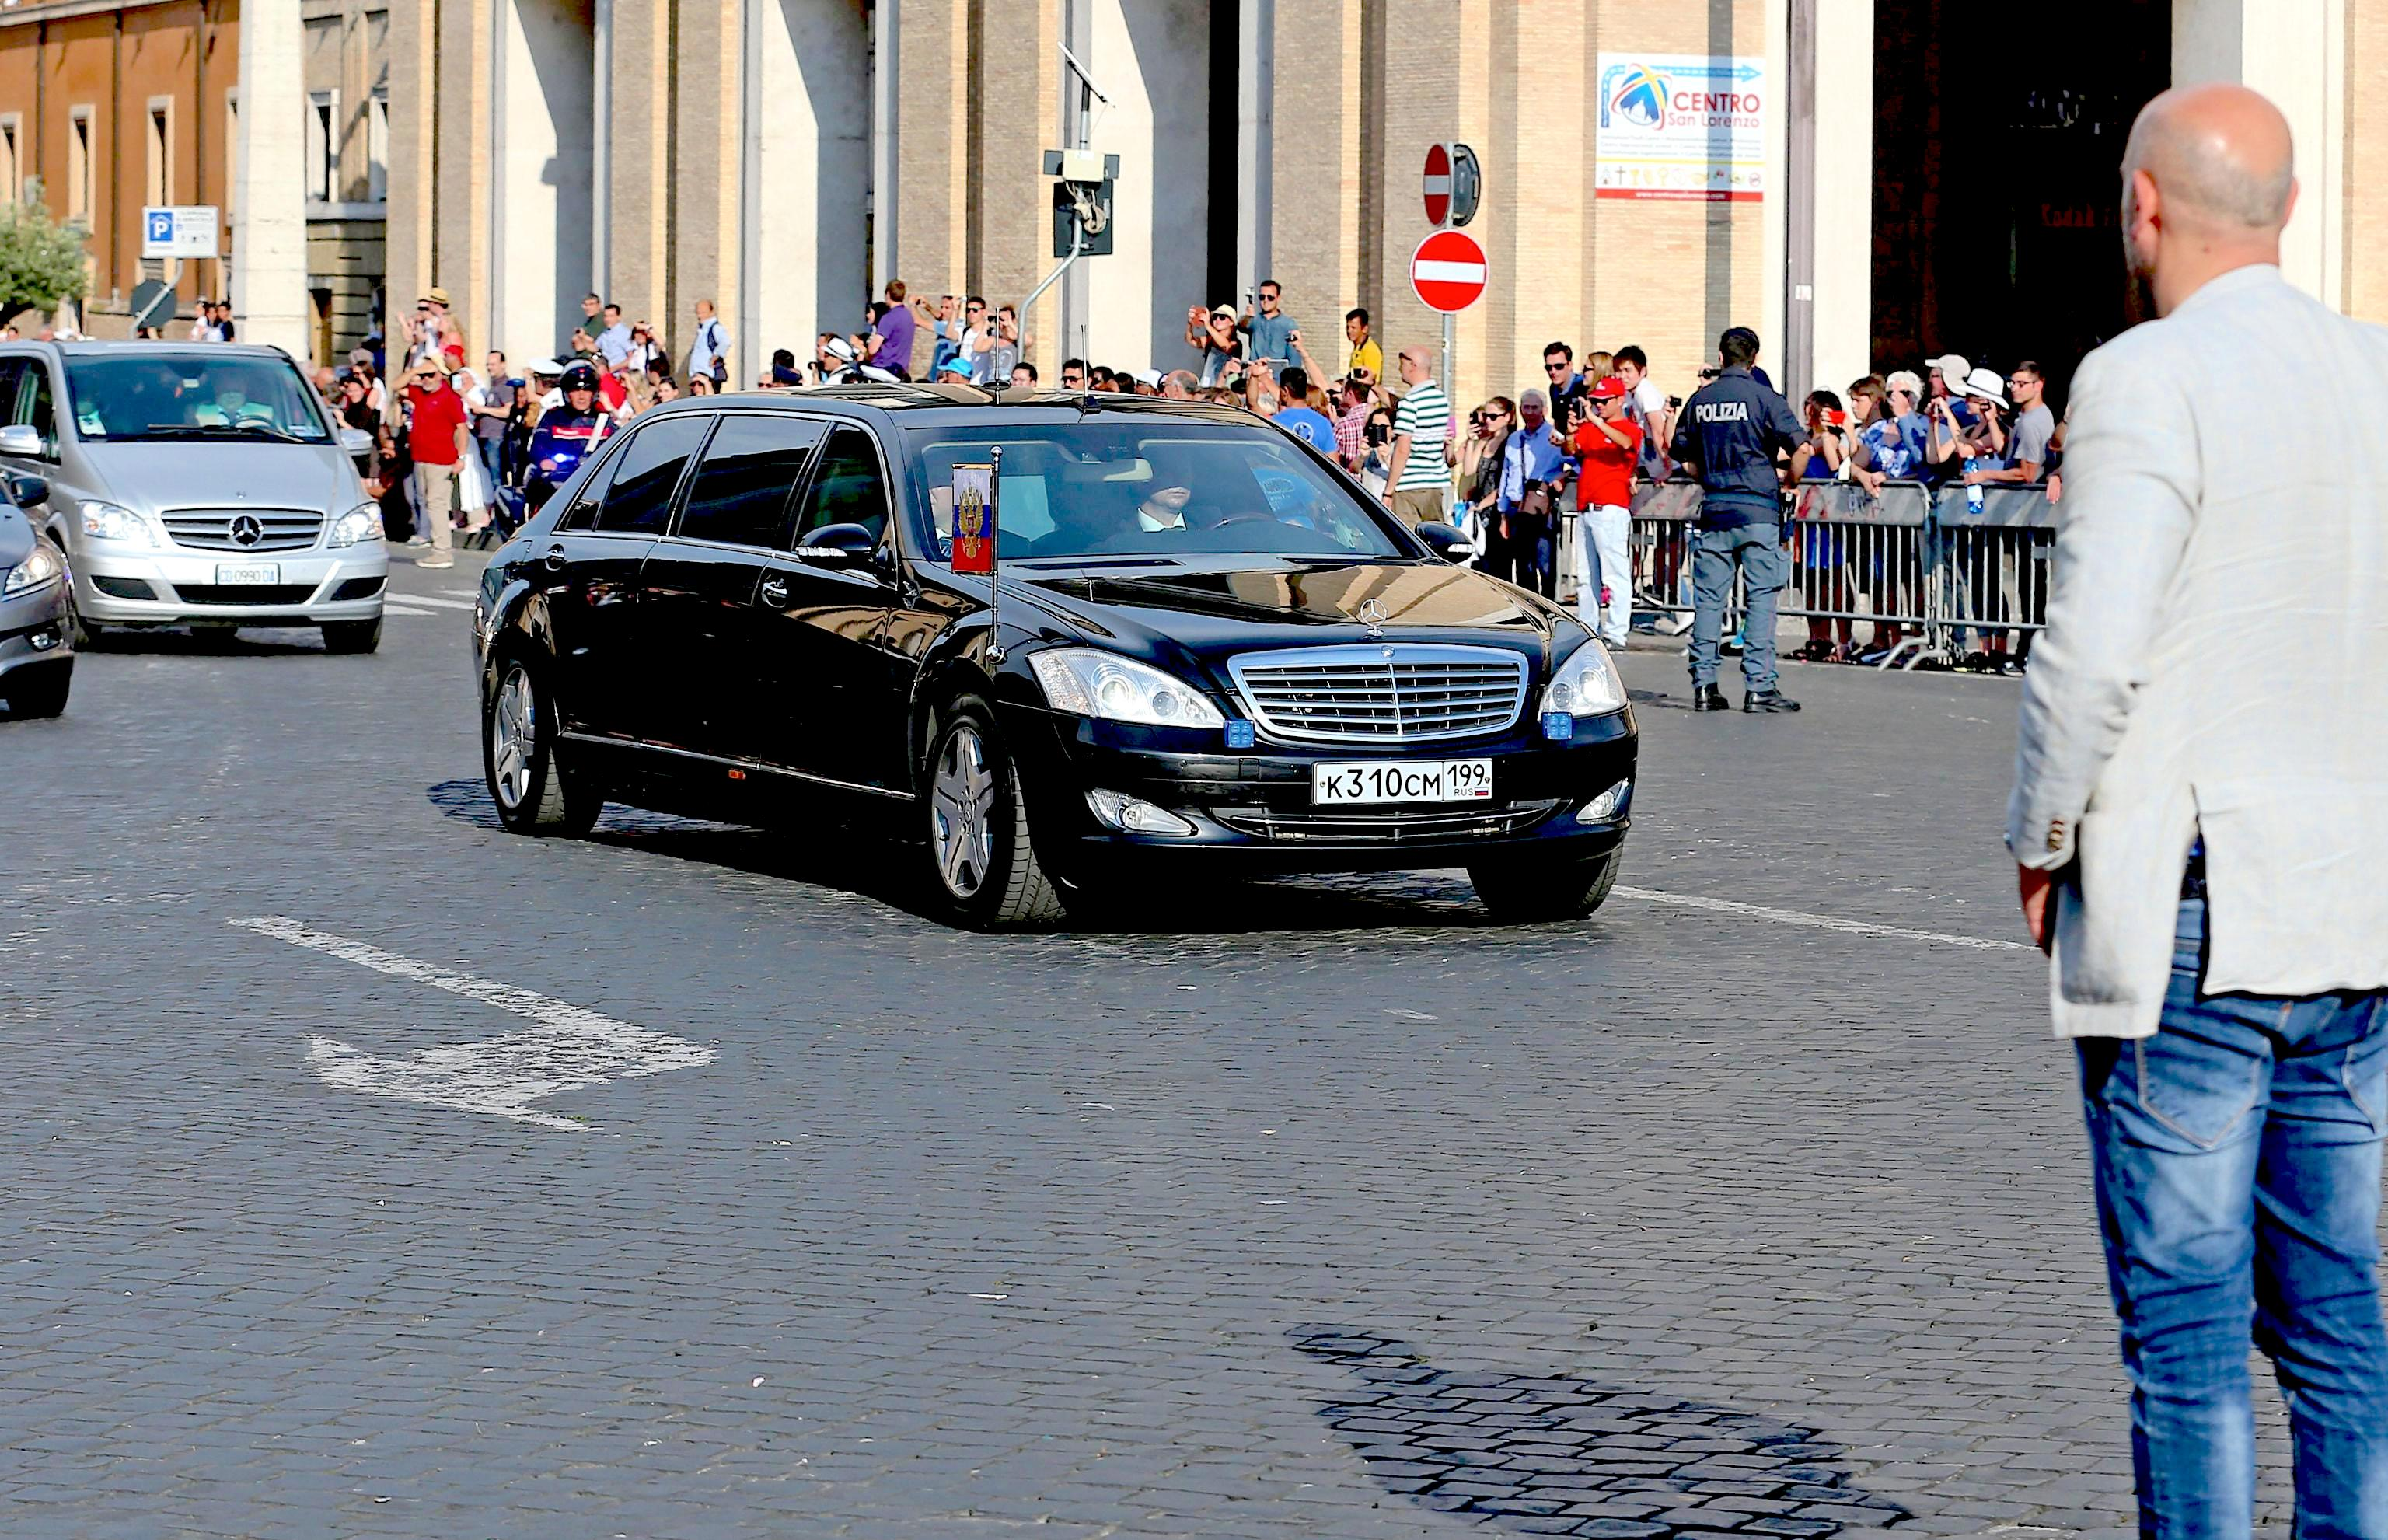 Russian President Vladimir Putin arrives at the Vatican for a private audience with Pope Francis